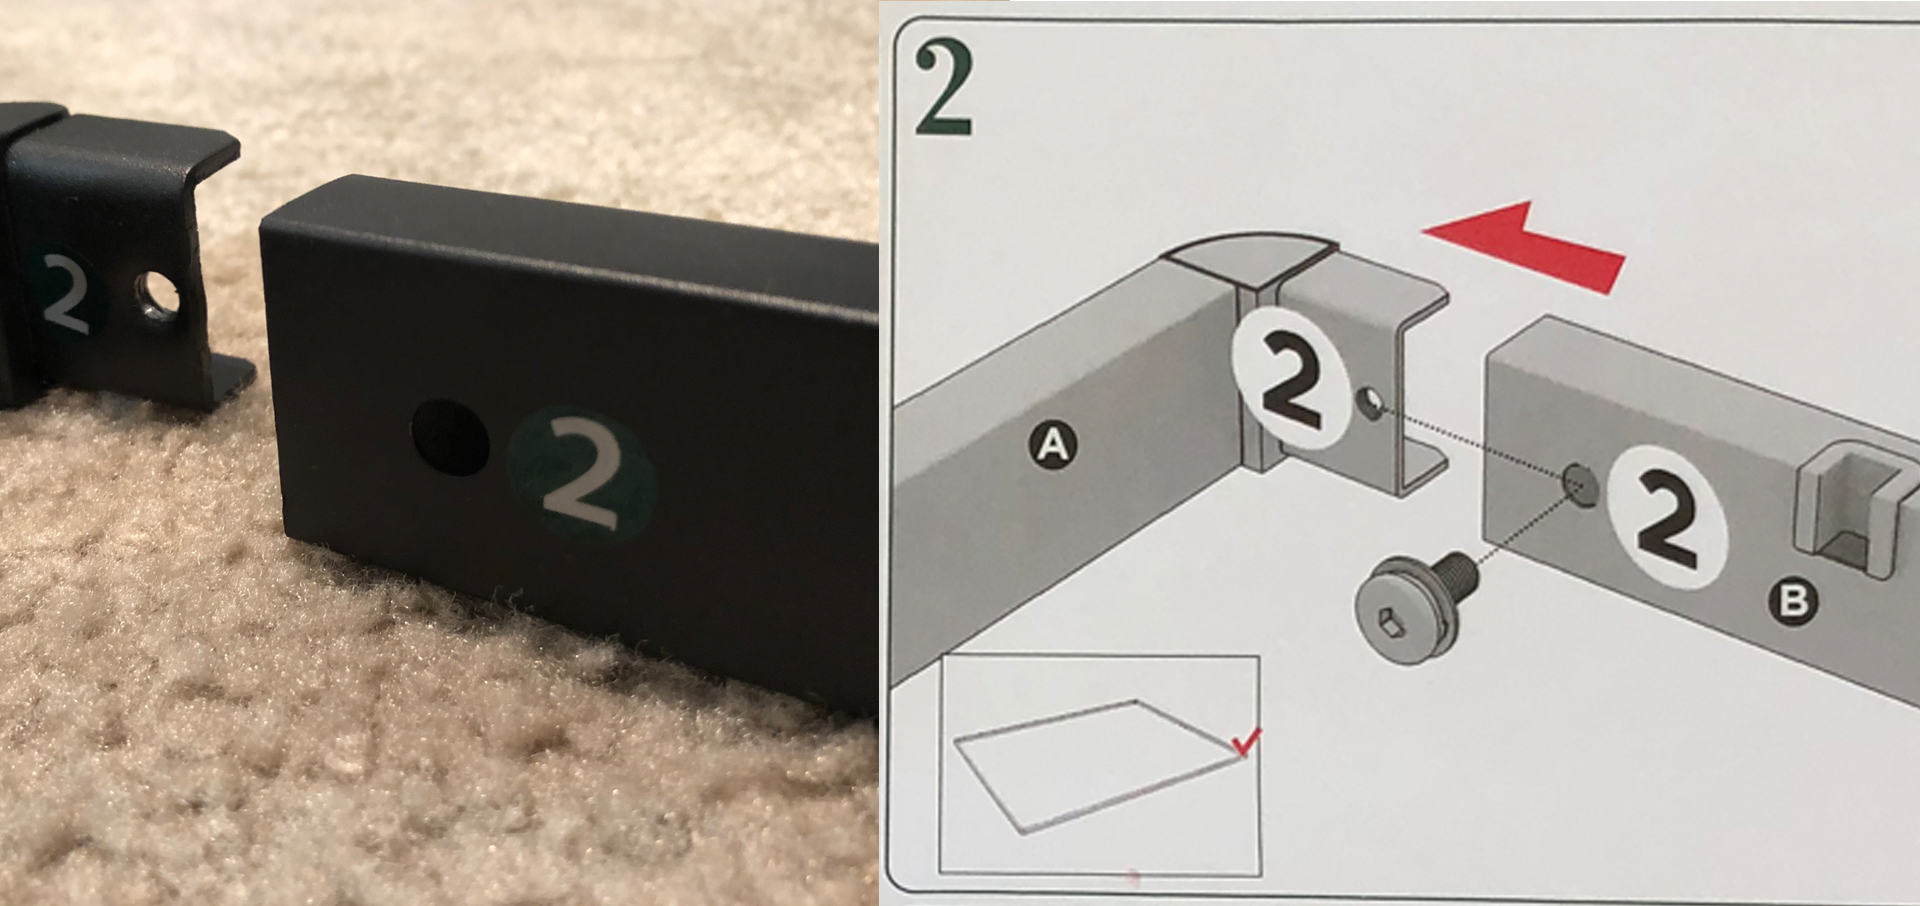 Bunkie board by Zinus, a photo of the product vs. assembly instruction manual.